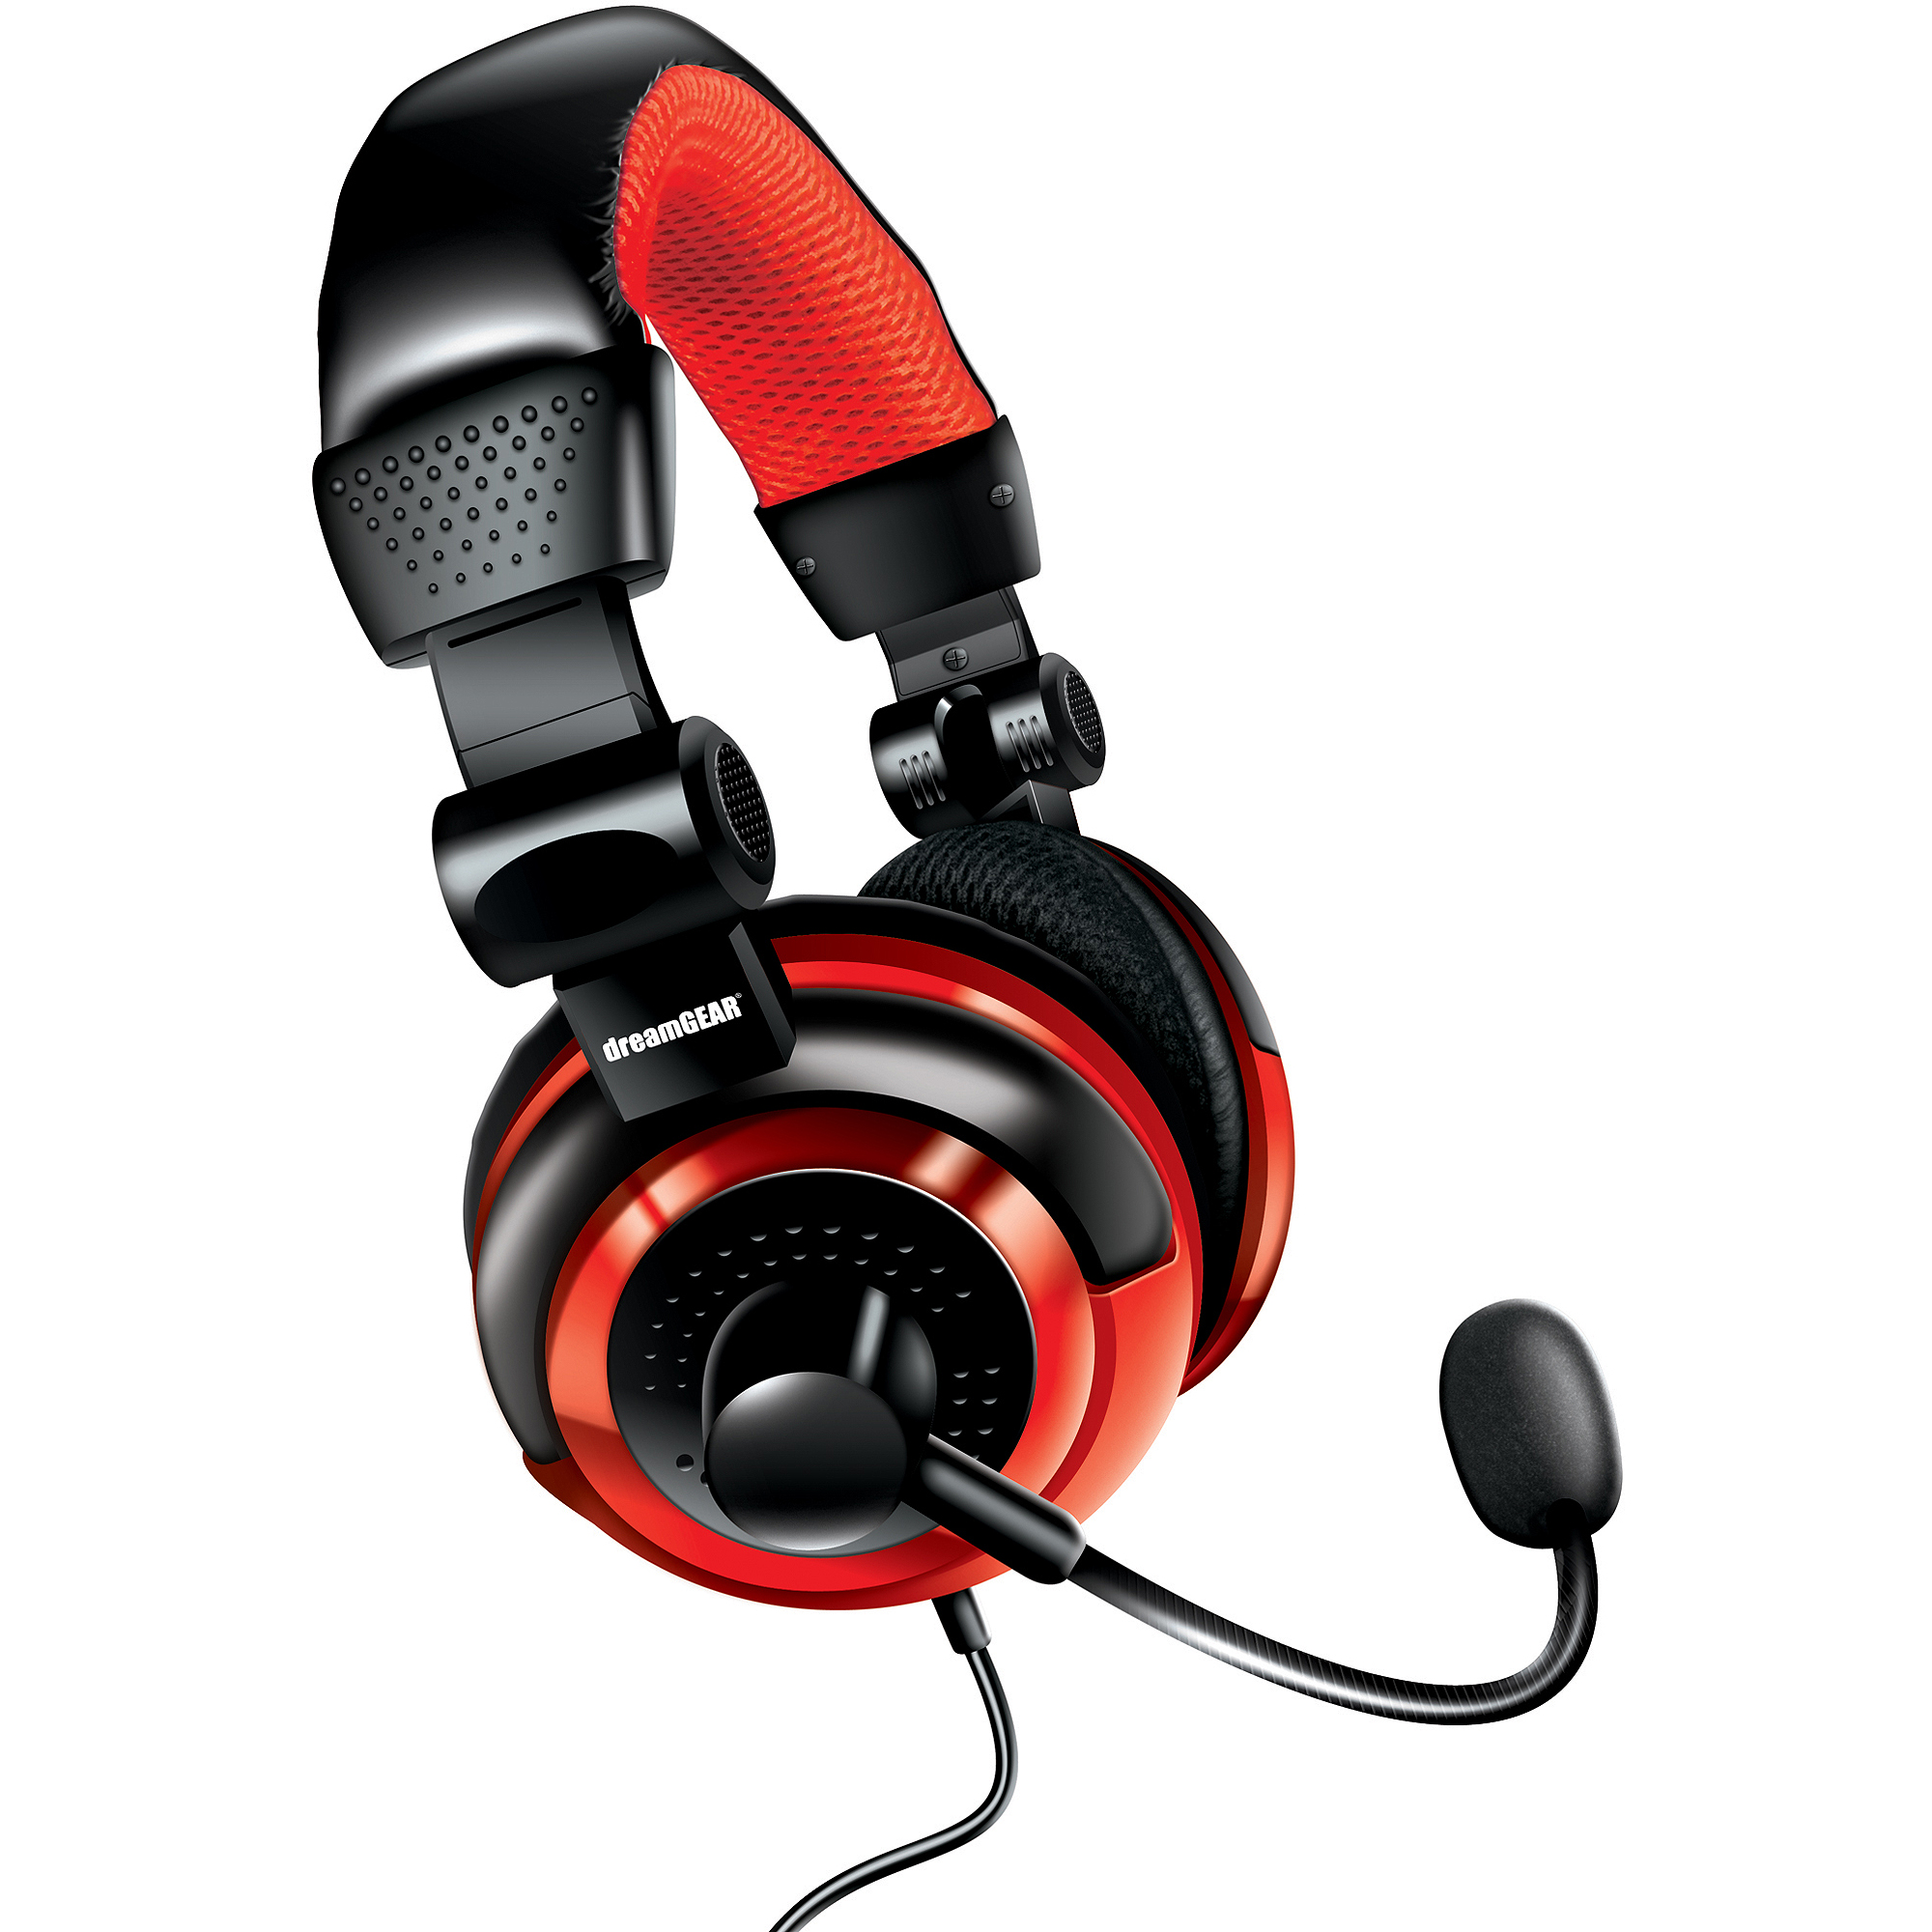 dreamGEAR DGUN-2571 Universal Elite Gaming Headset for PS4